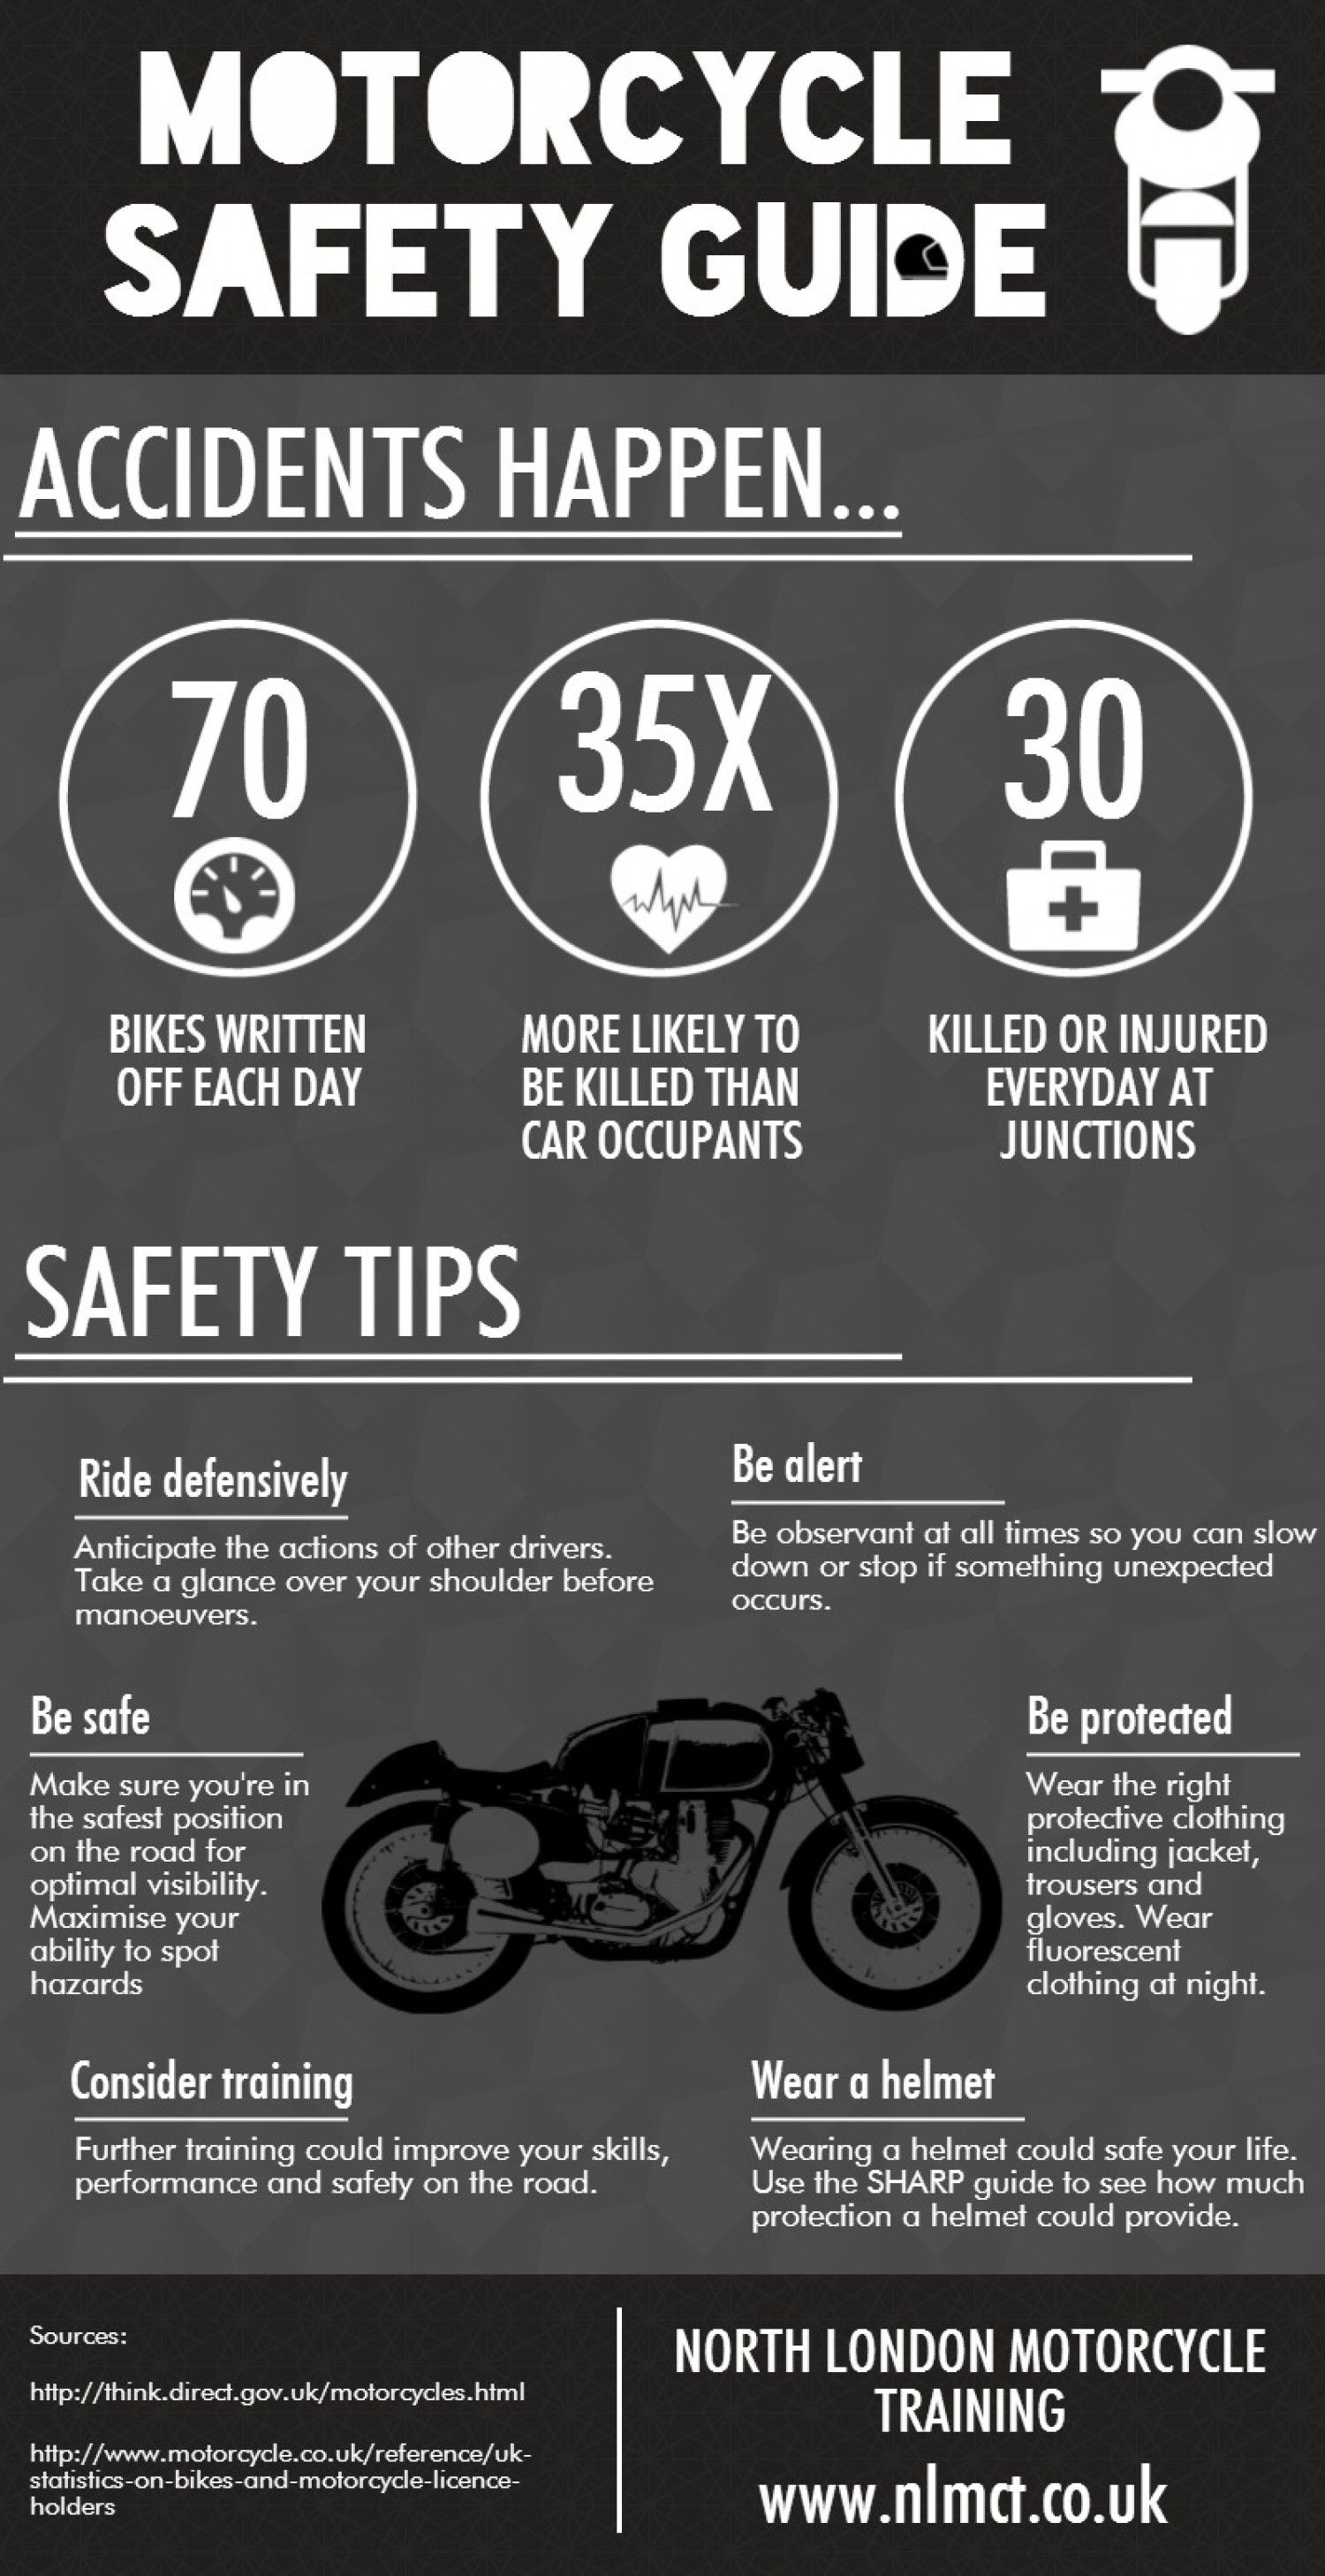 Motorrad Safety, Motorcycle Safety, Now and Then